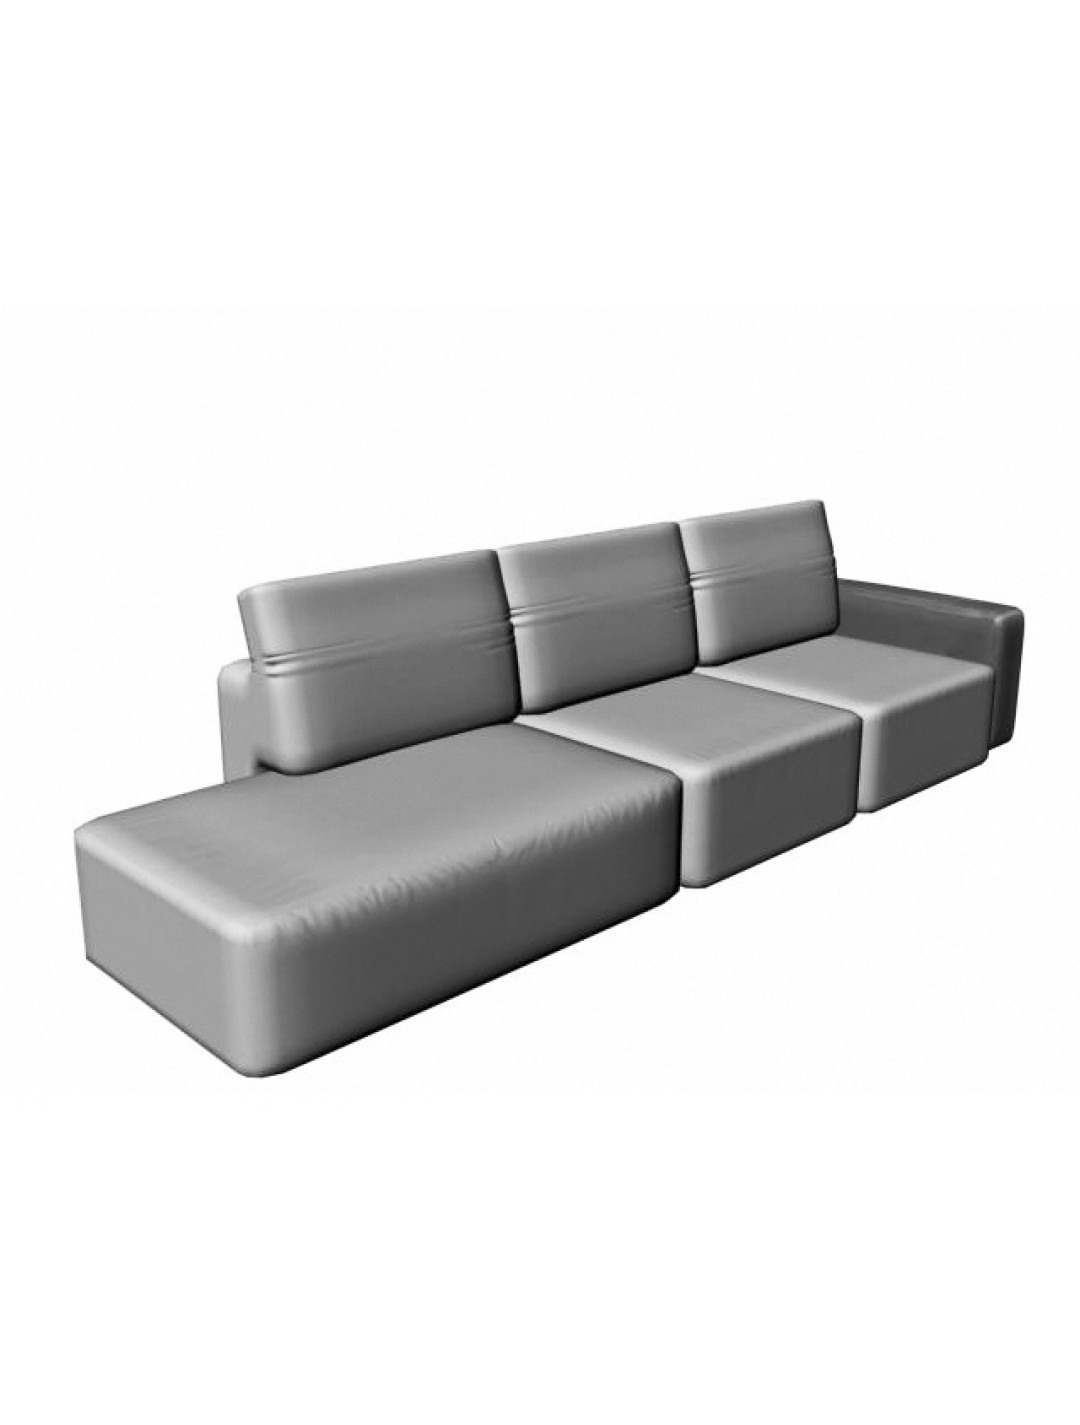 COSMOPOL 2 SEAT SOFA+BENCH RIGHT 1 ARM-LEFT, C.O.M.